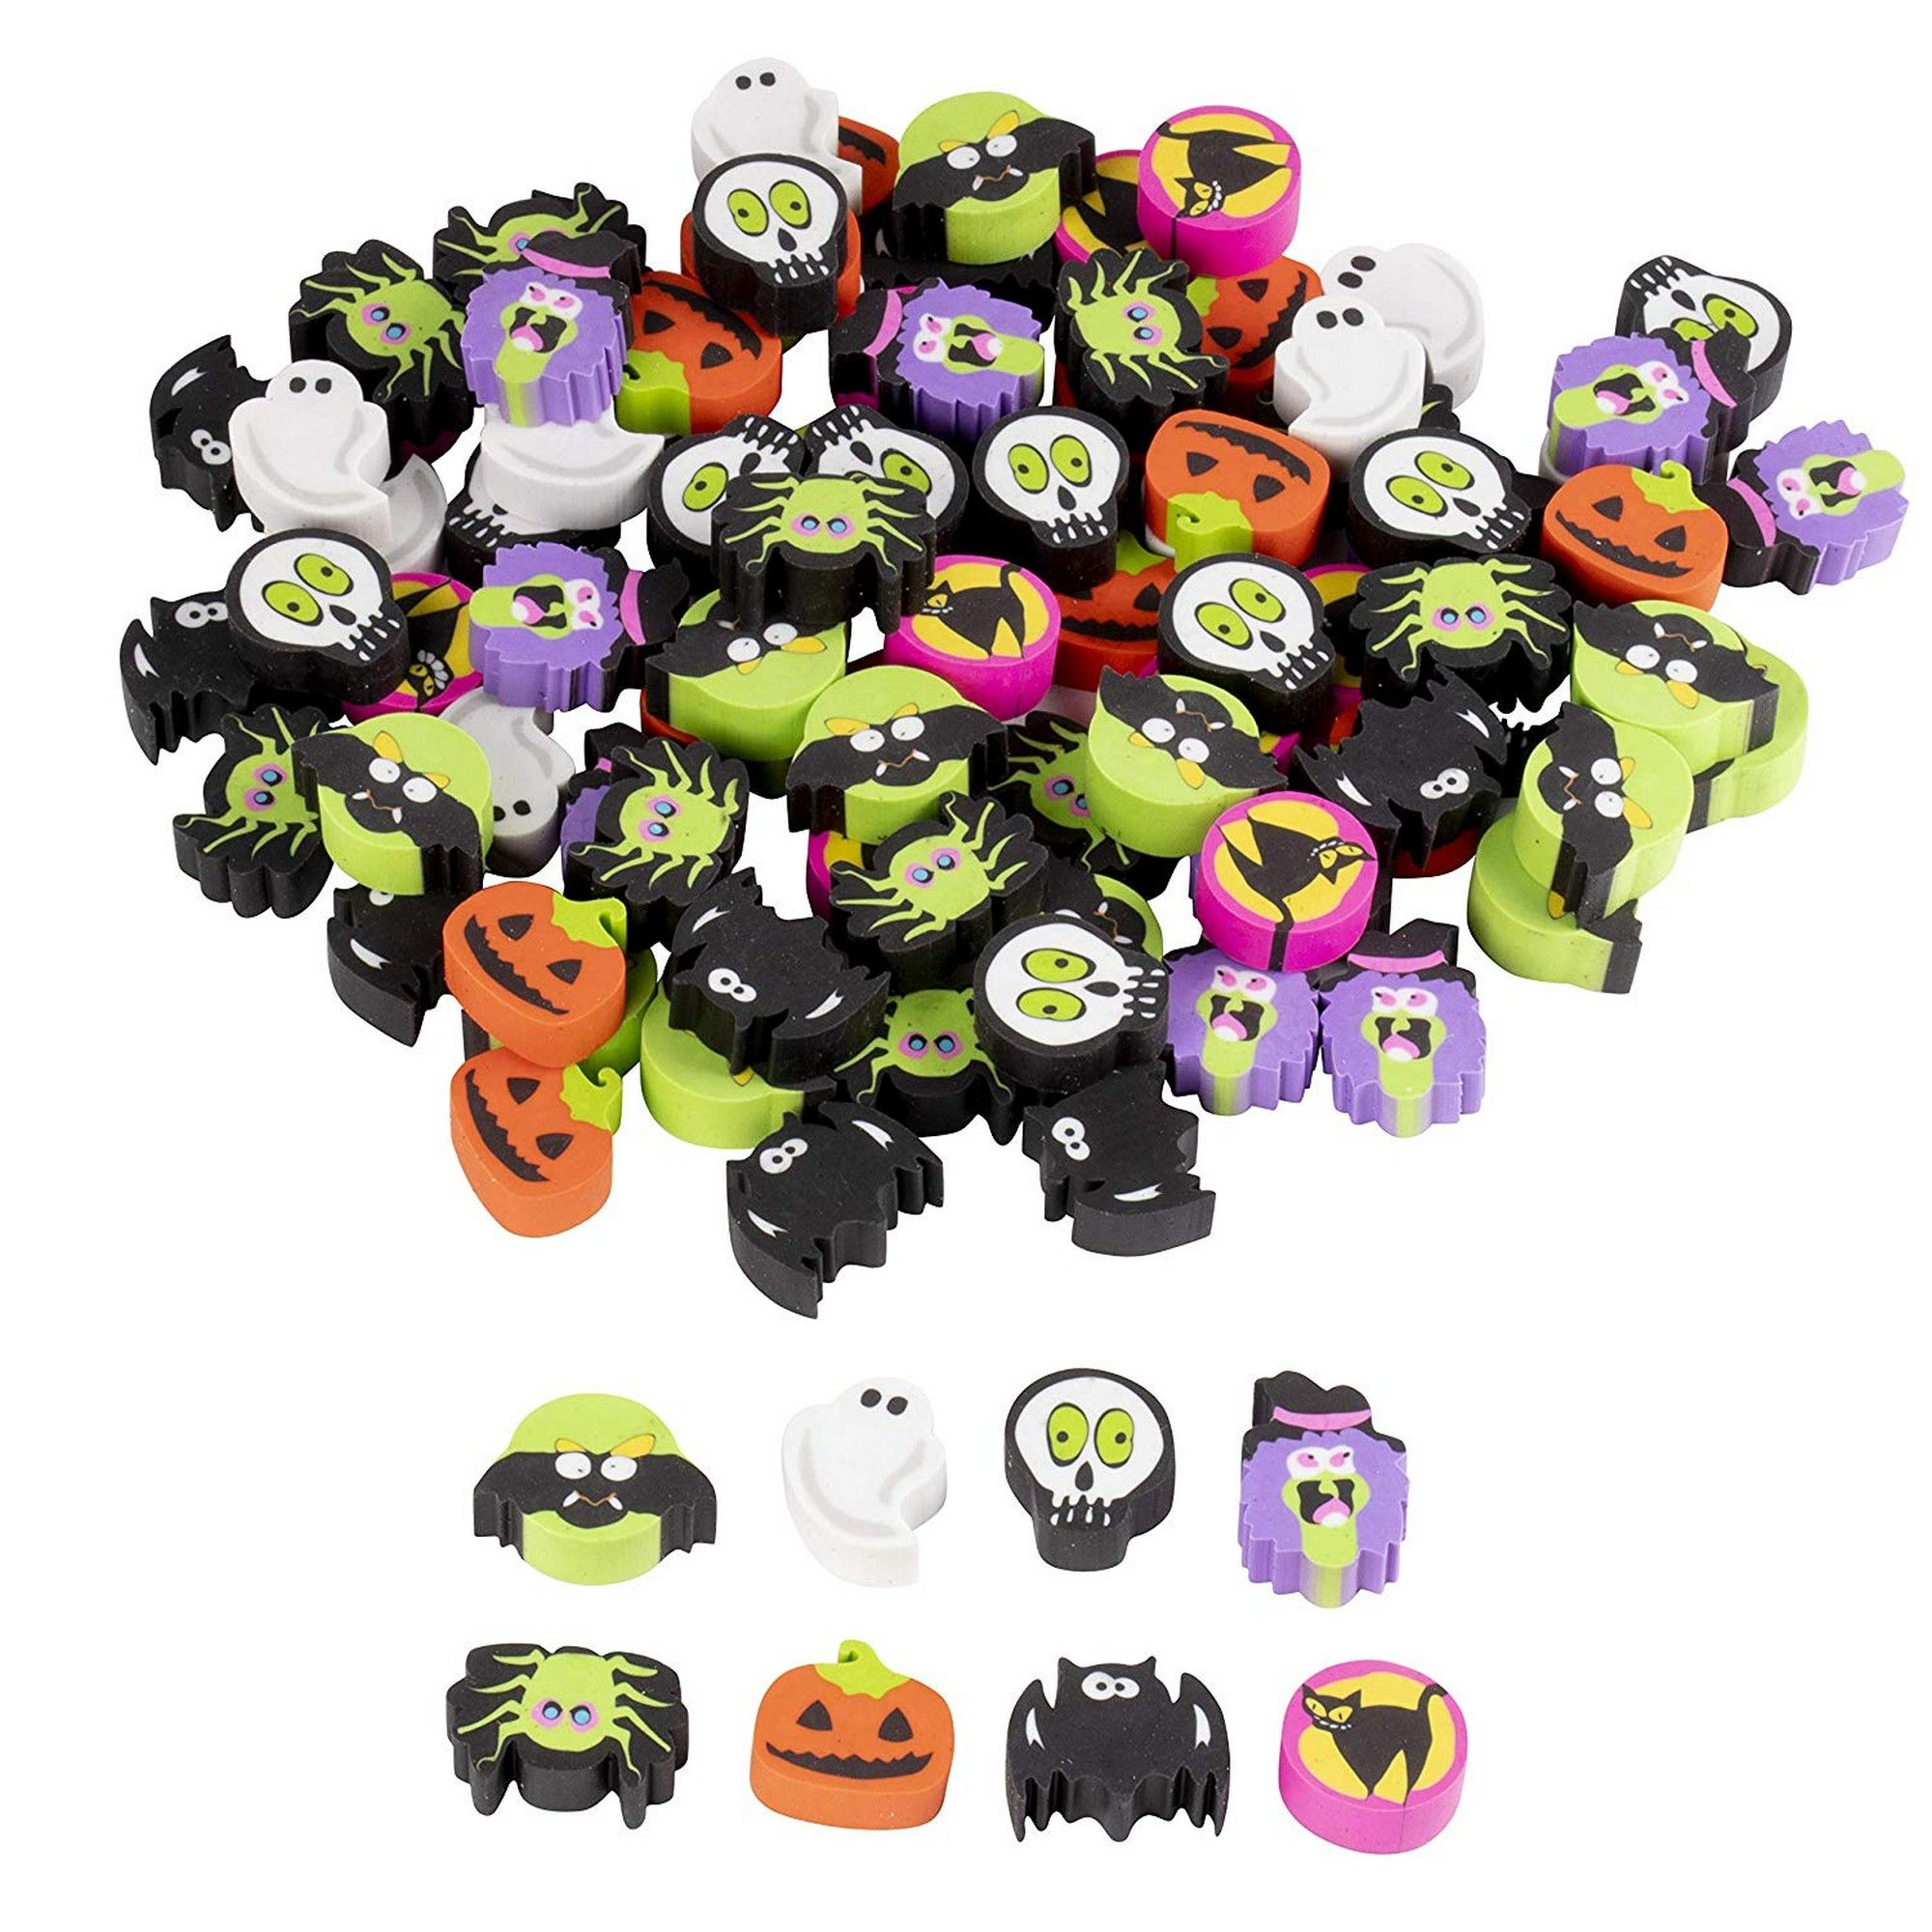 Halloween erasers with bats, pumpkins, and ghosts